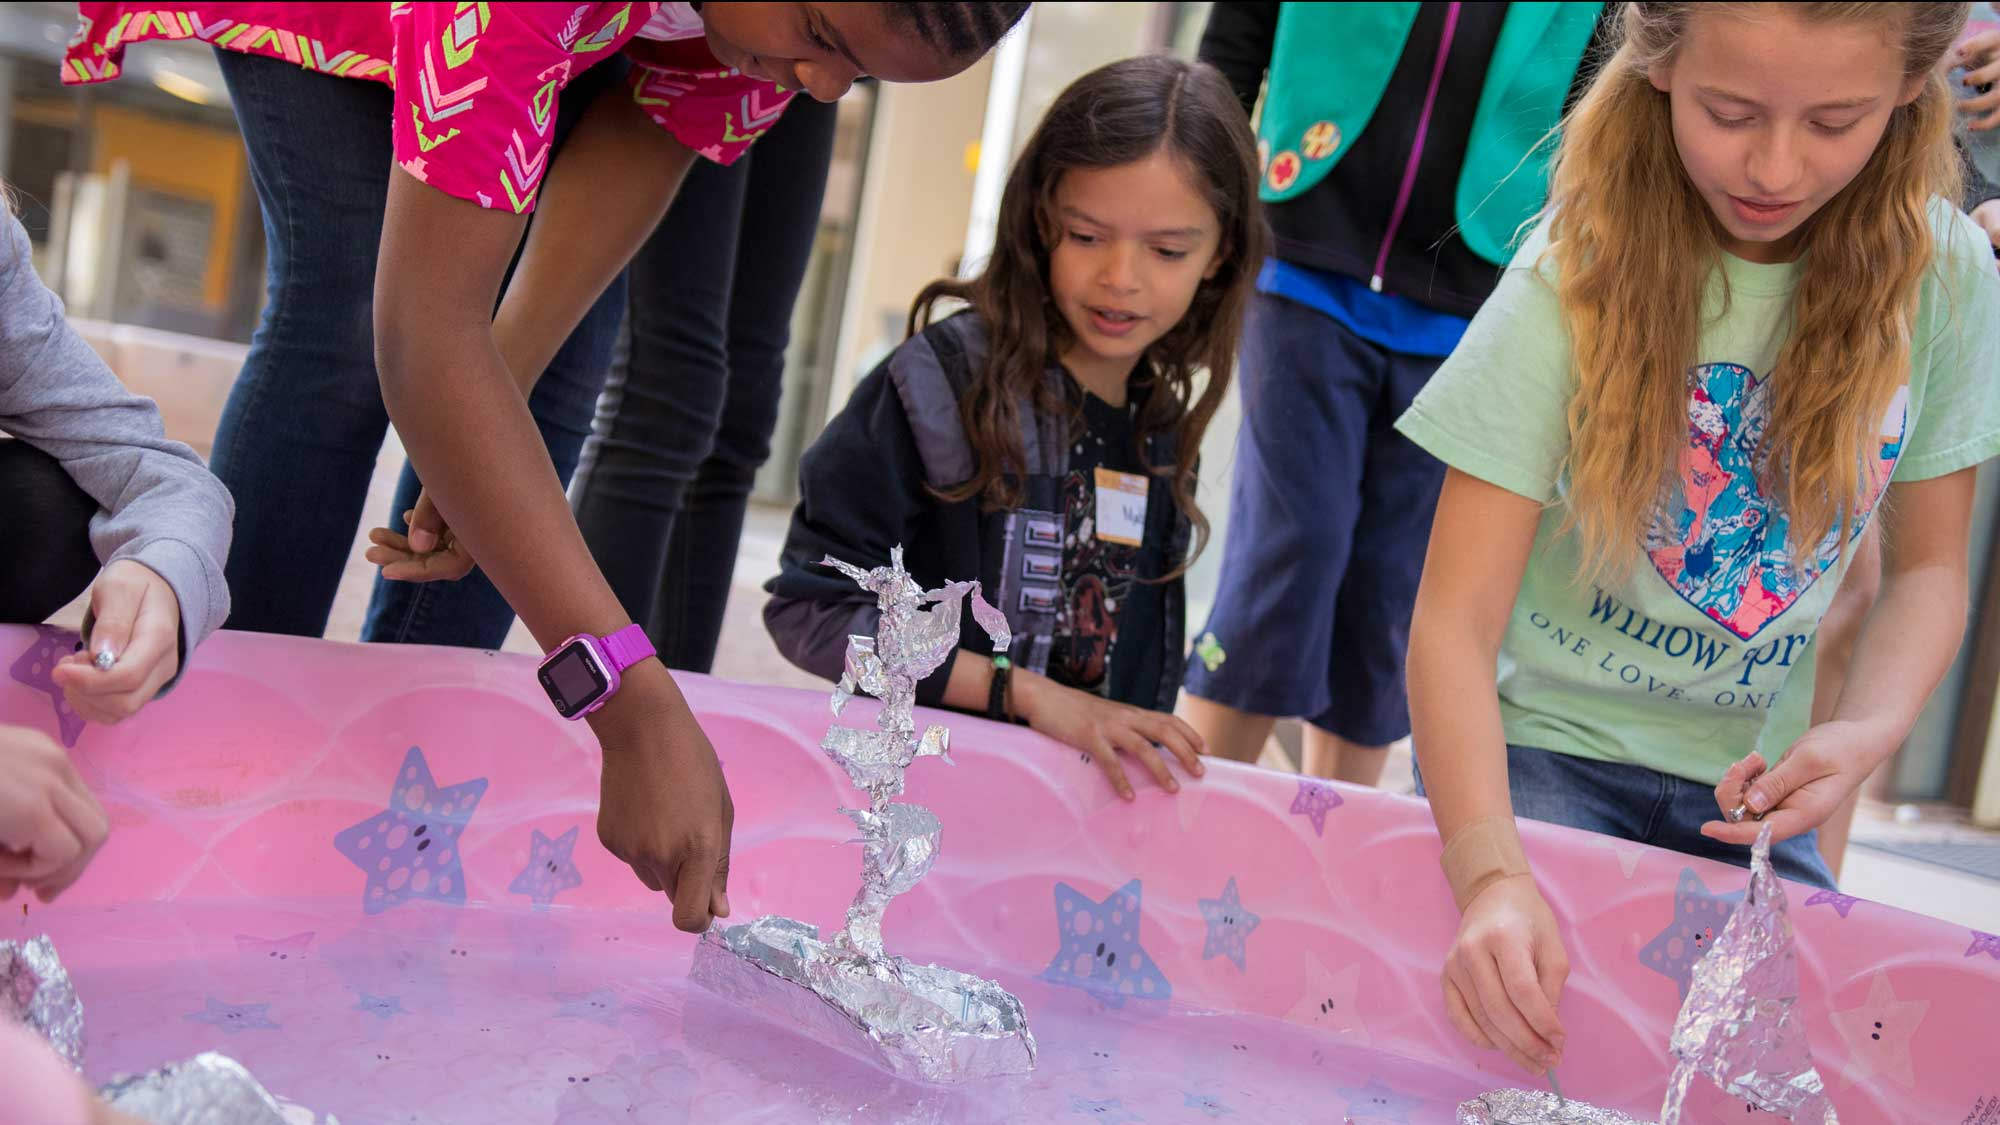 A small group of Girl Scouts sit around a kiddy pool testing out their aluminum boats.